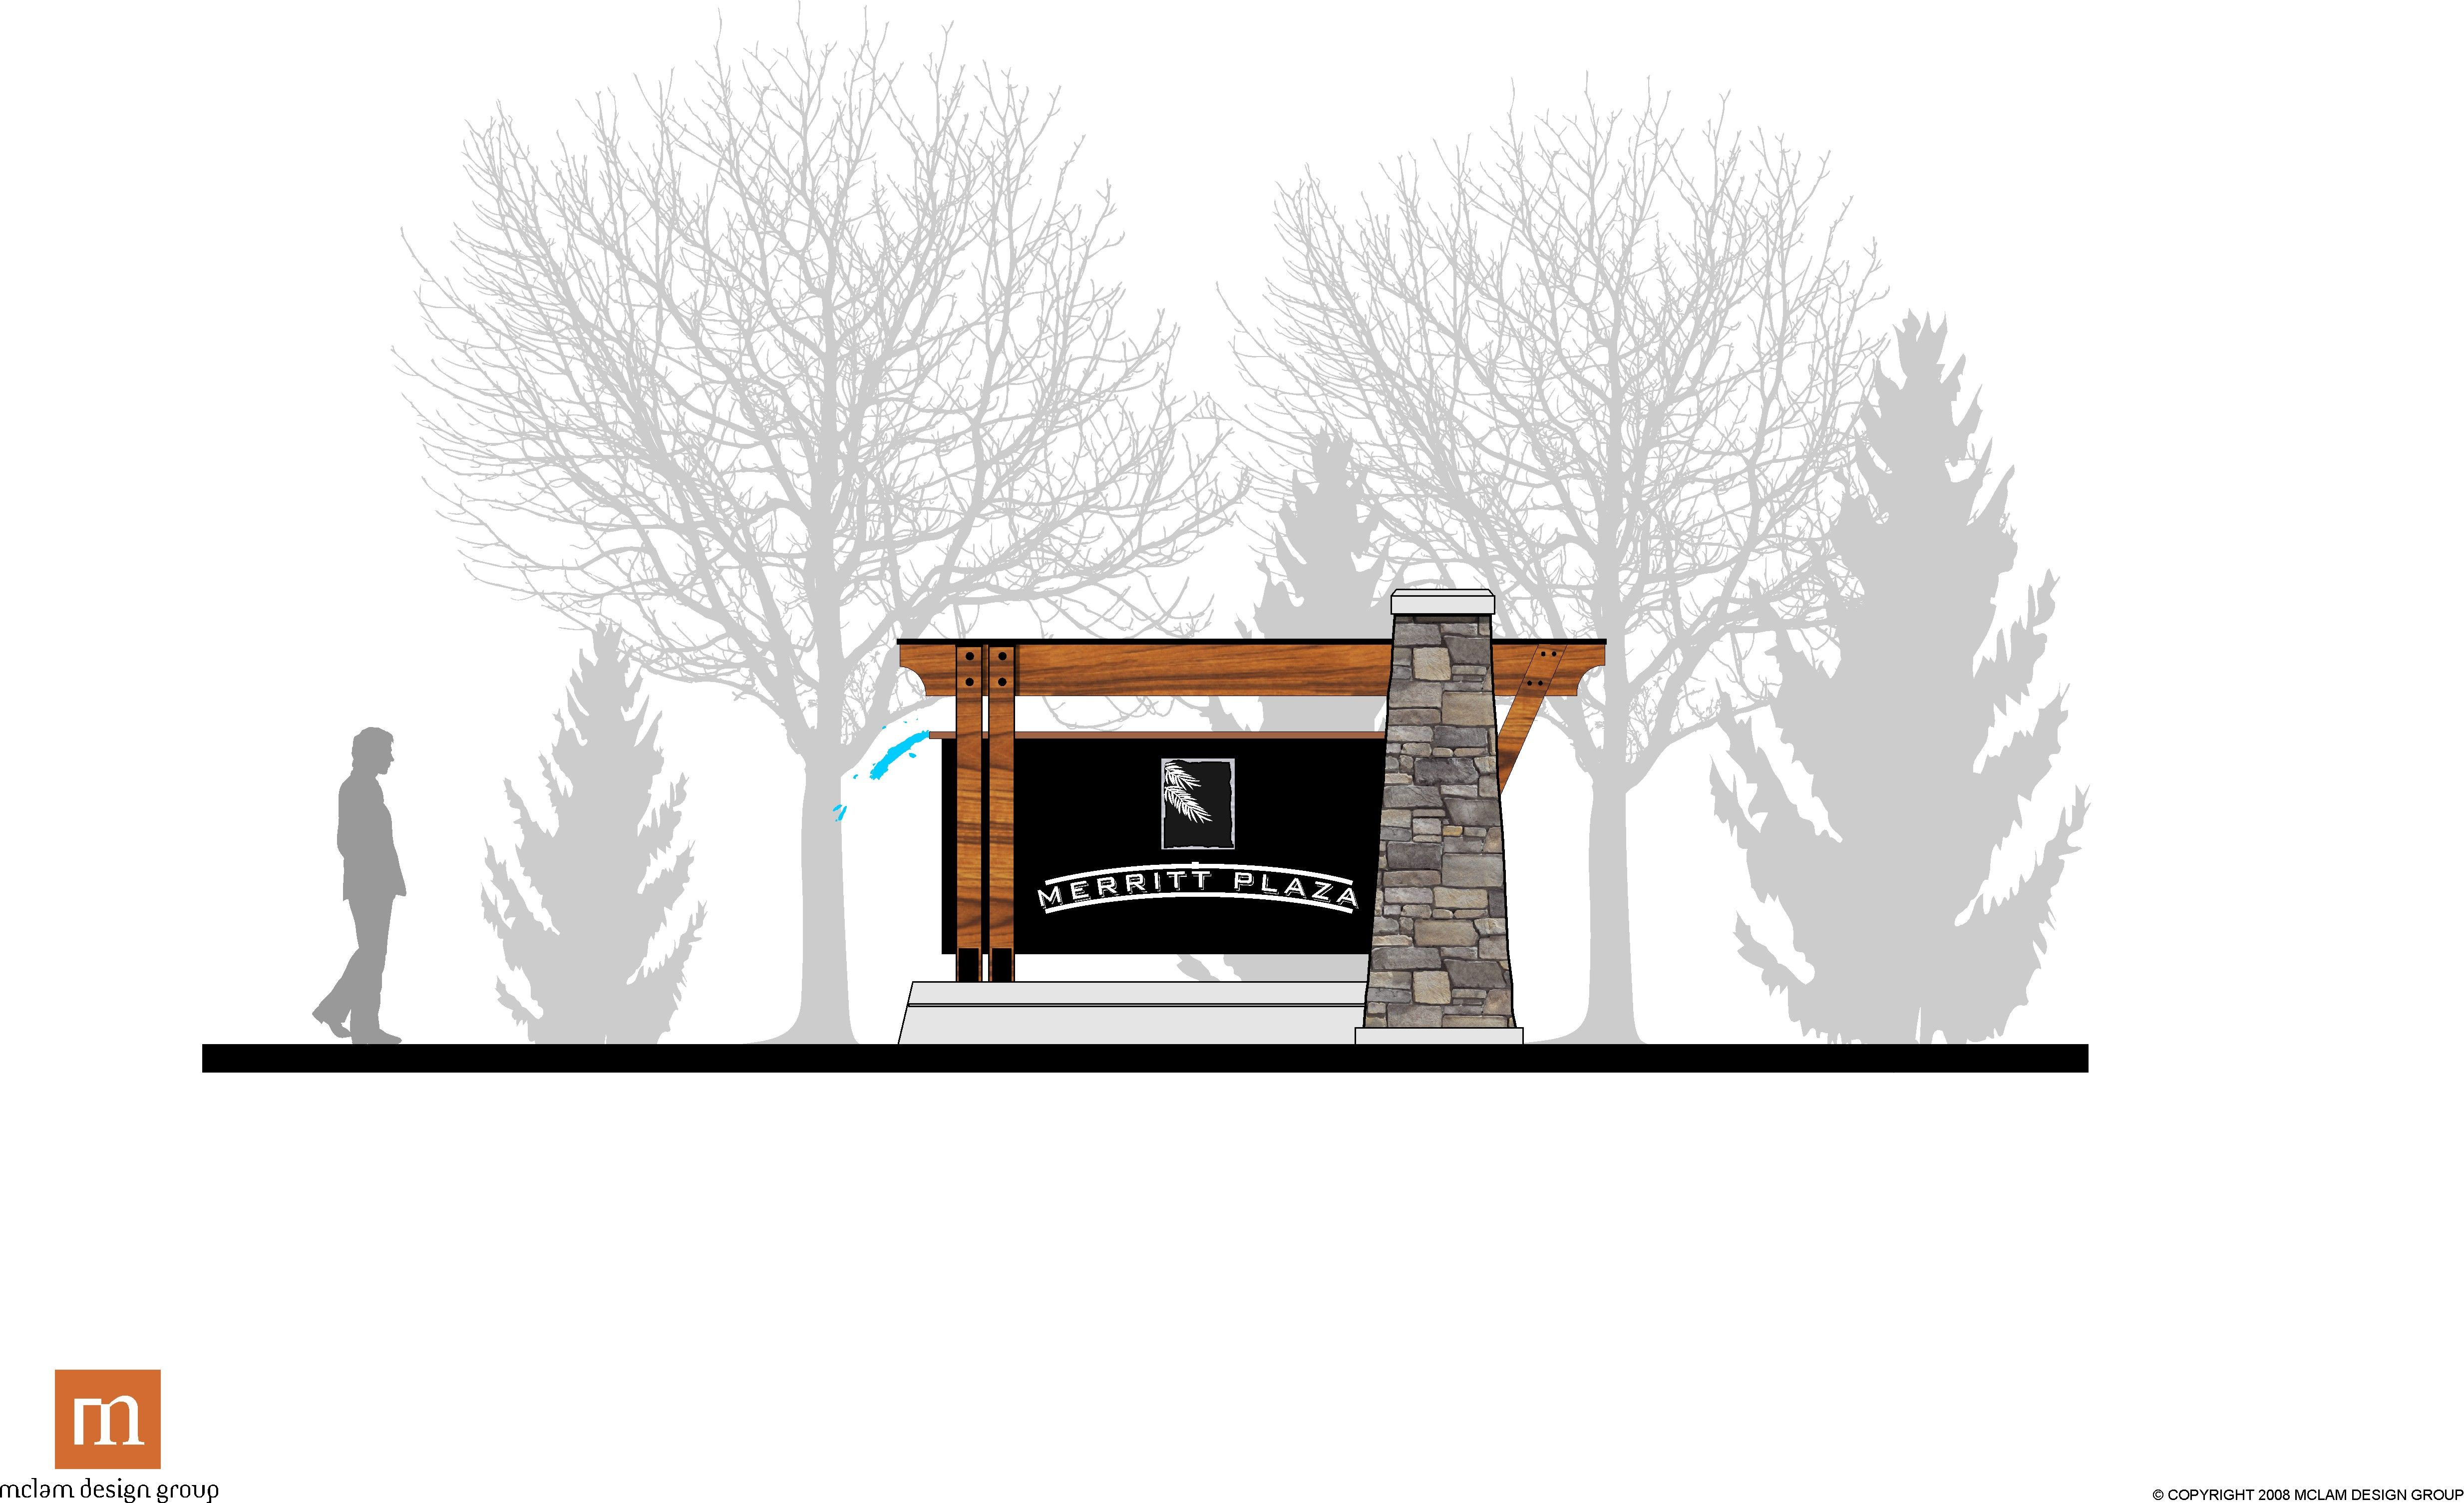 Architectural signage, spokane sign designs, spokane sign monument ...